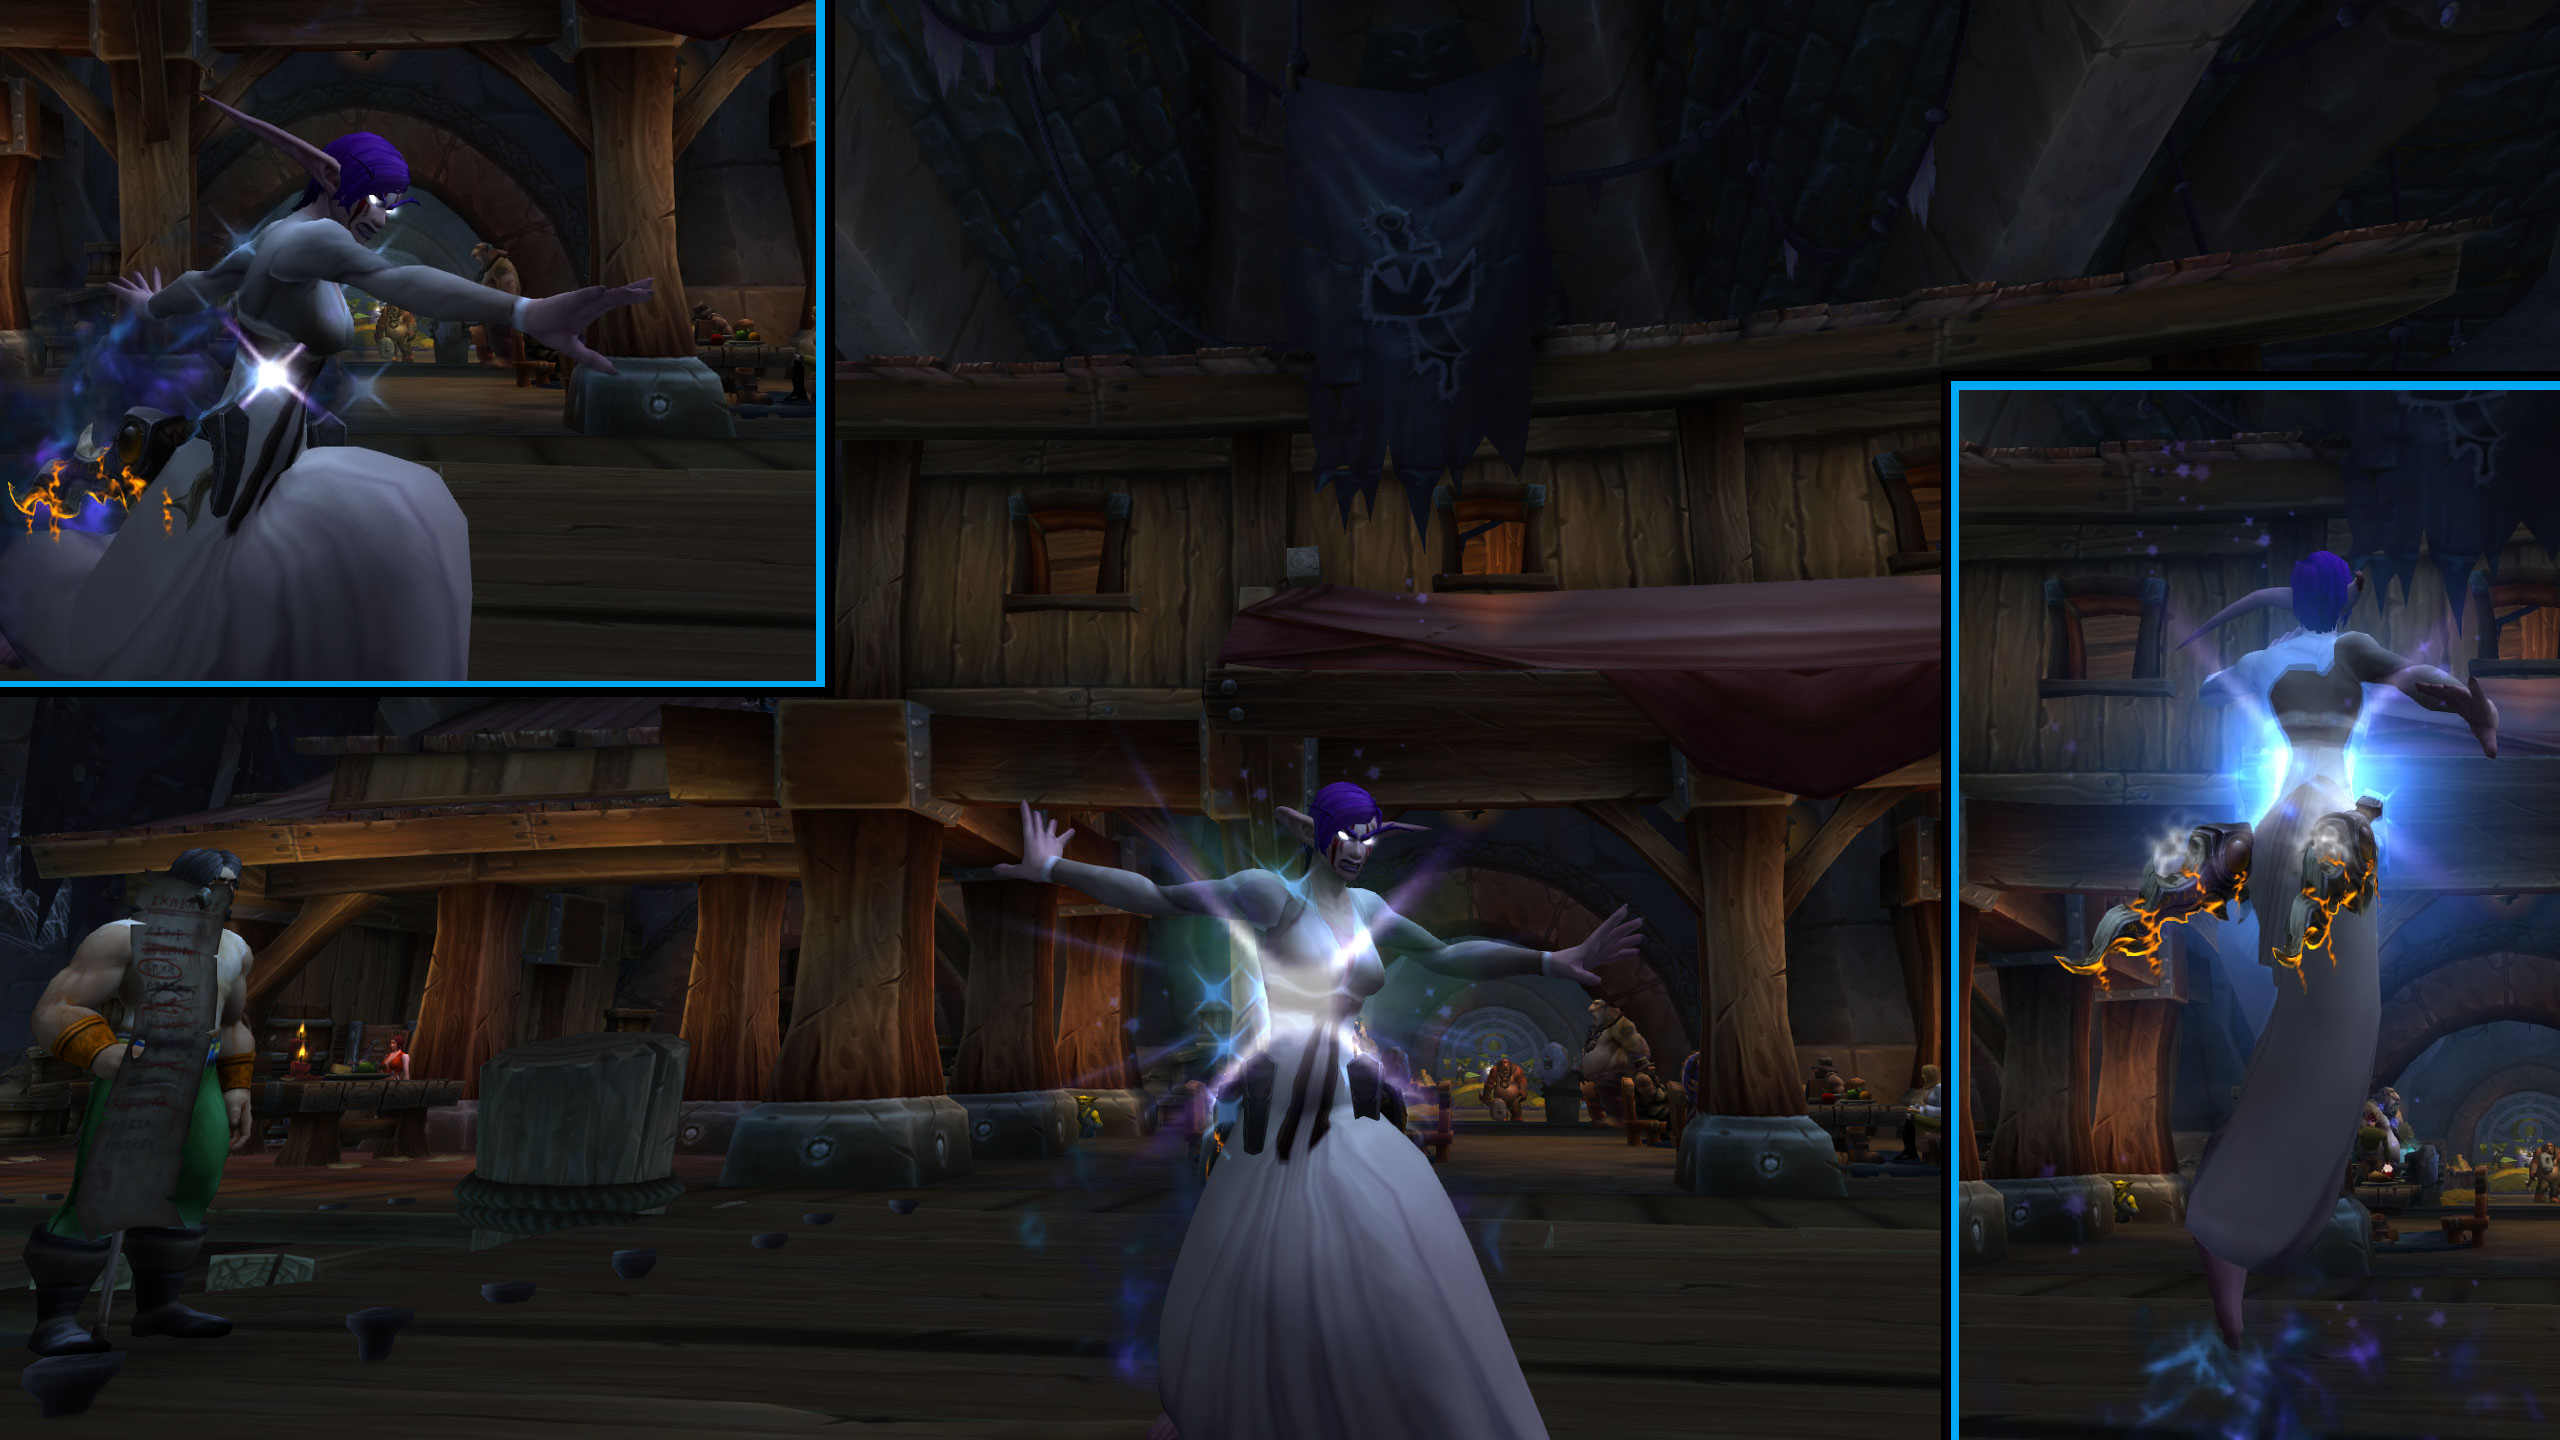 In Legion I finally bought myself a dress so I can look pretty while I  twirl ...  pirouette  ... help deadbeat healers  ... lose dps  ... avoid the bench  ... Feint. / Submitted by Cardstock